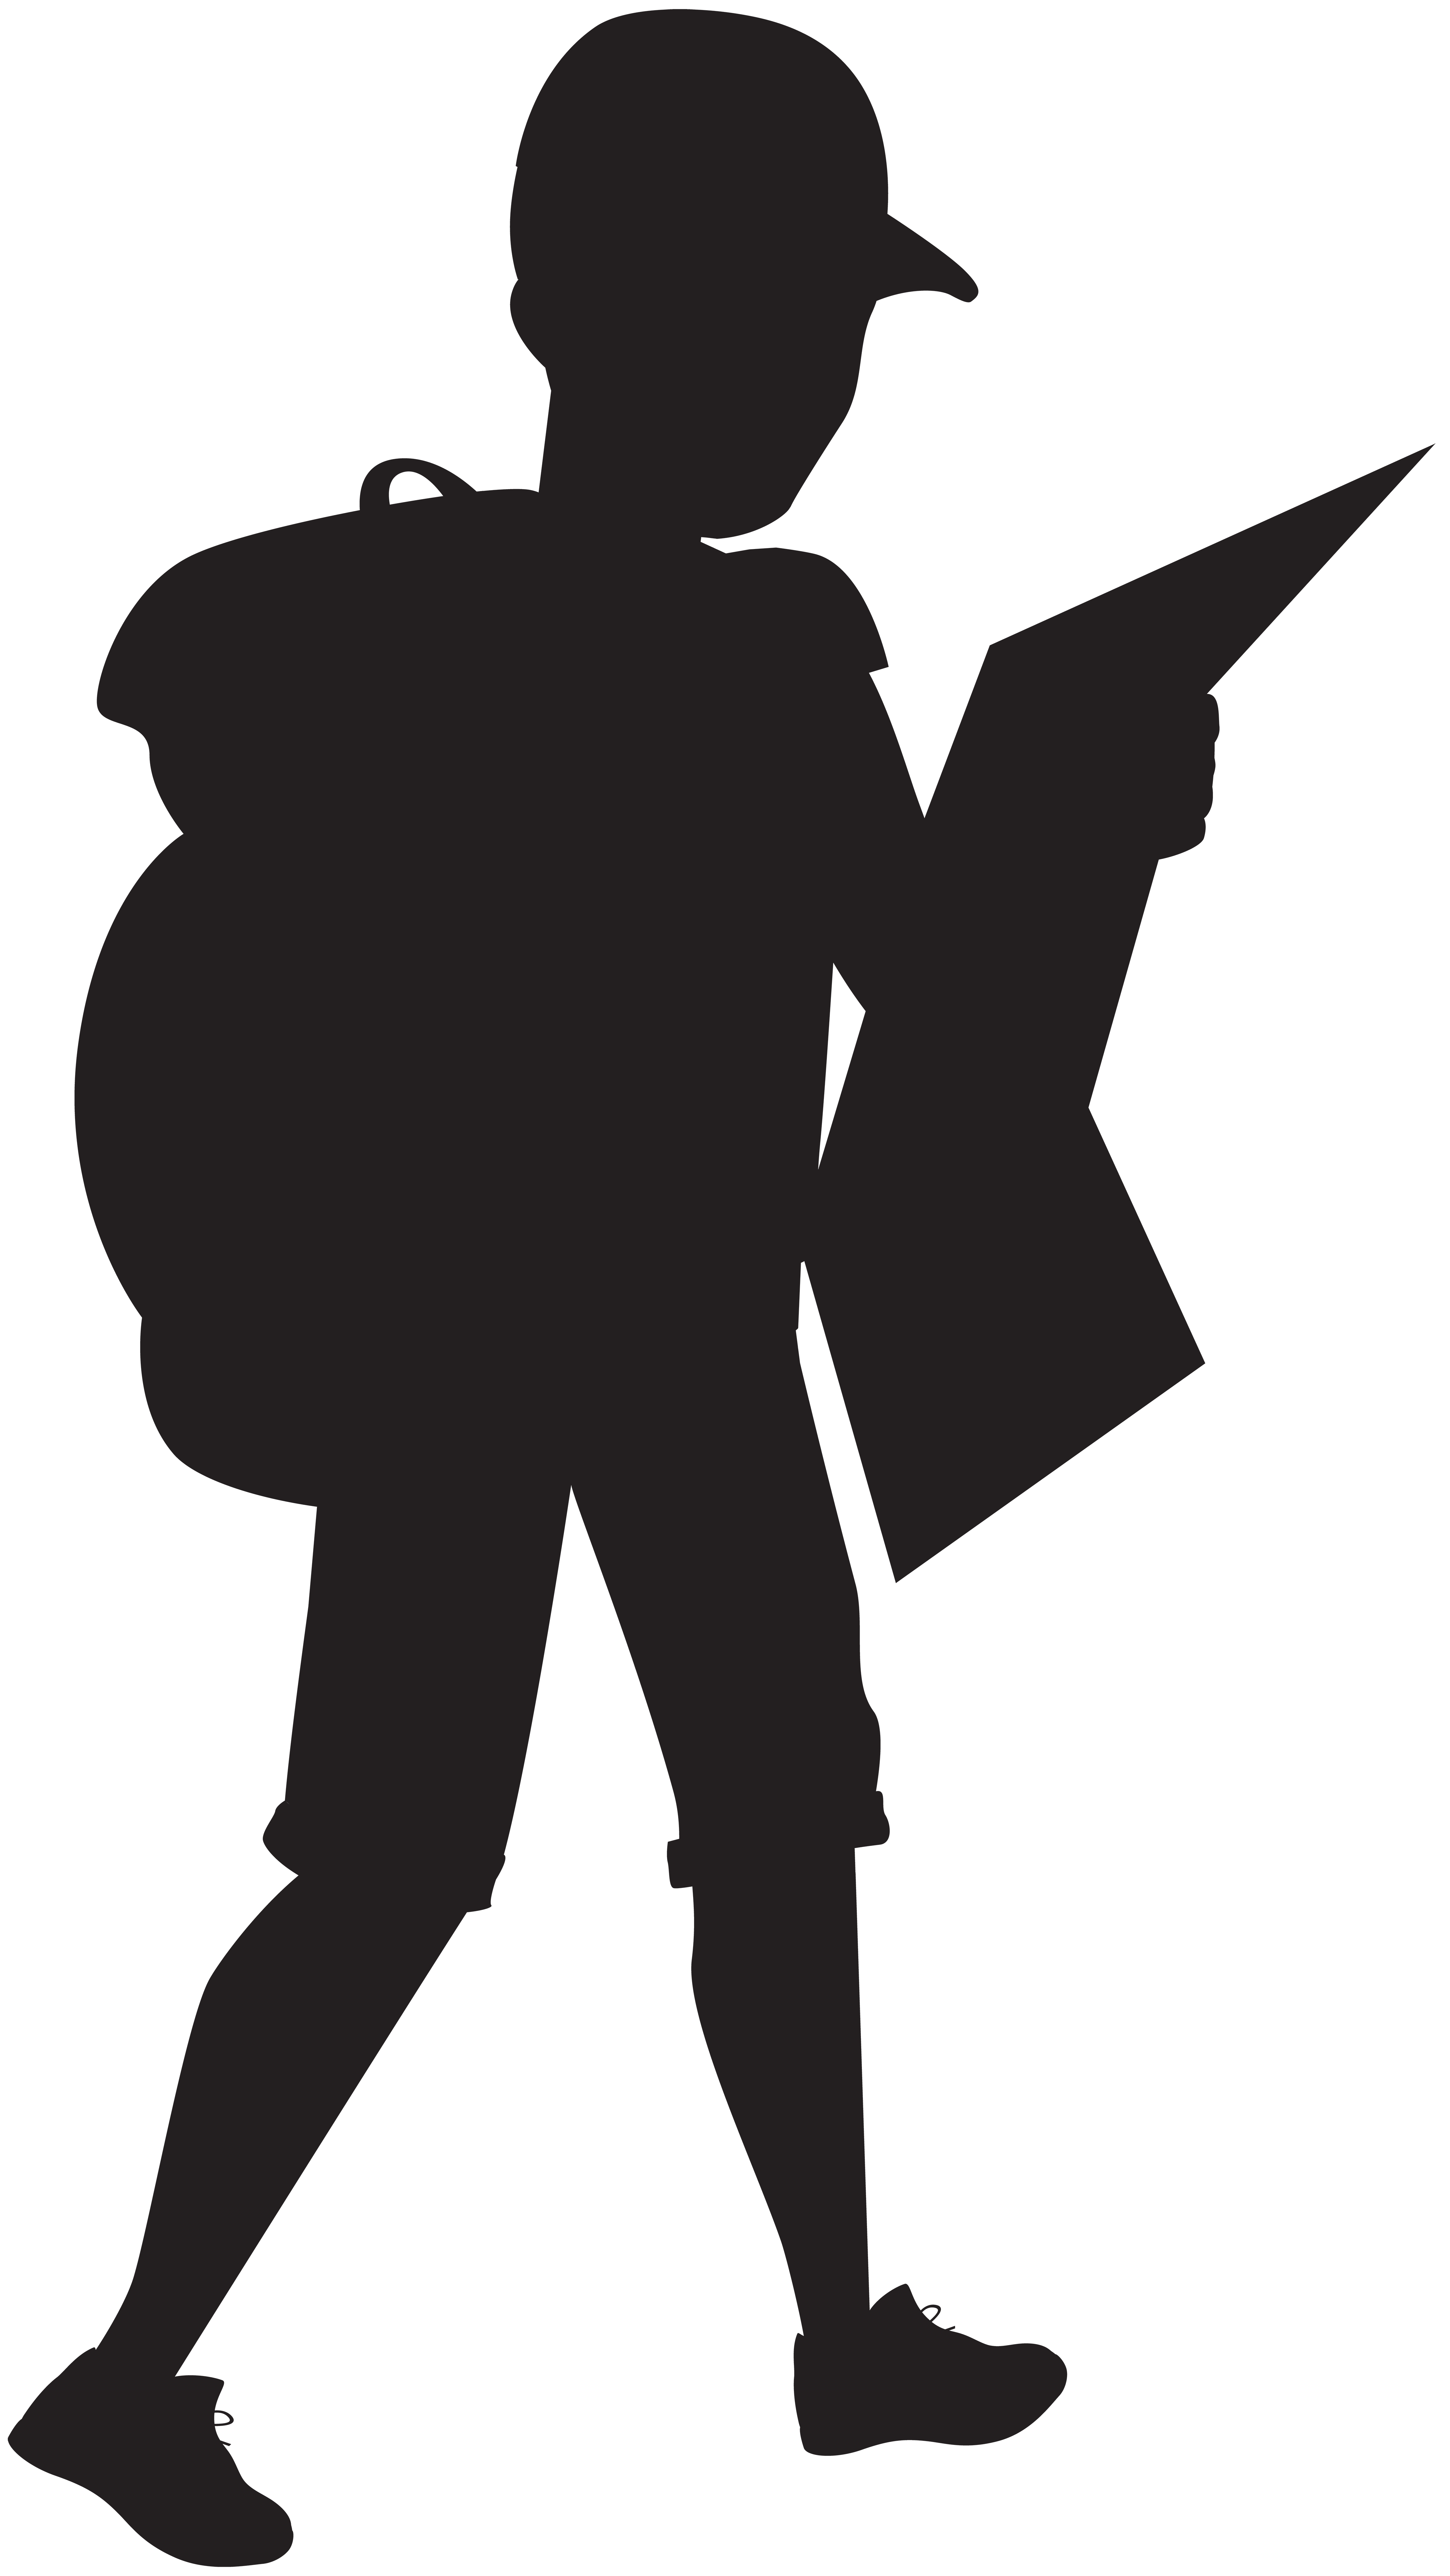 Boy with silhouette png. Clipart backpack blank